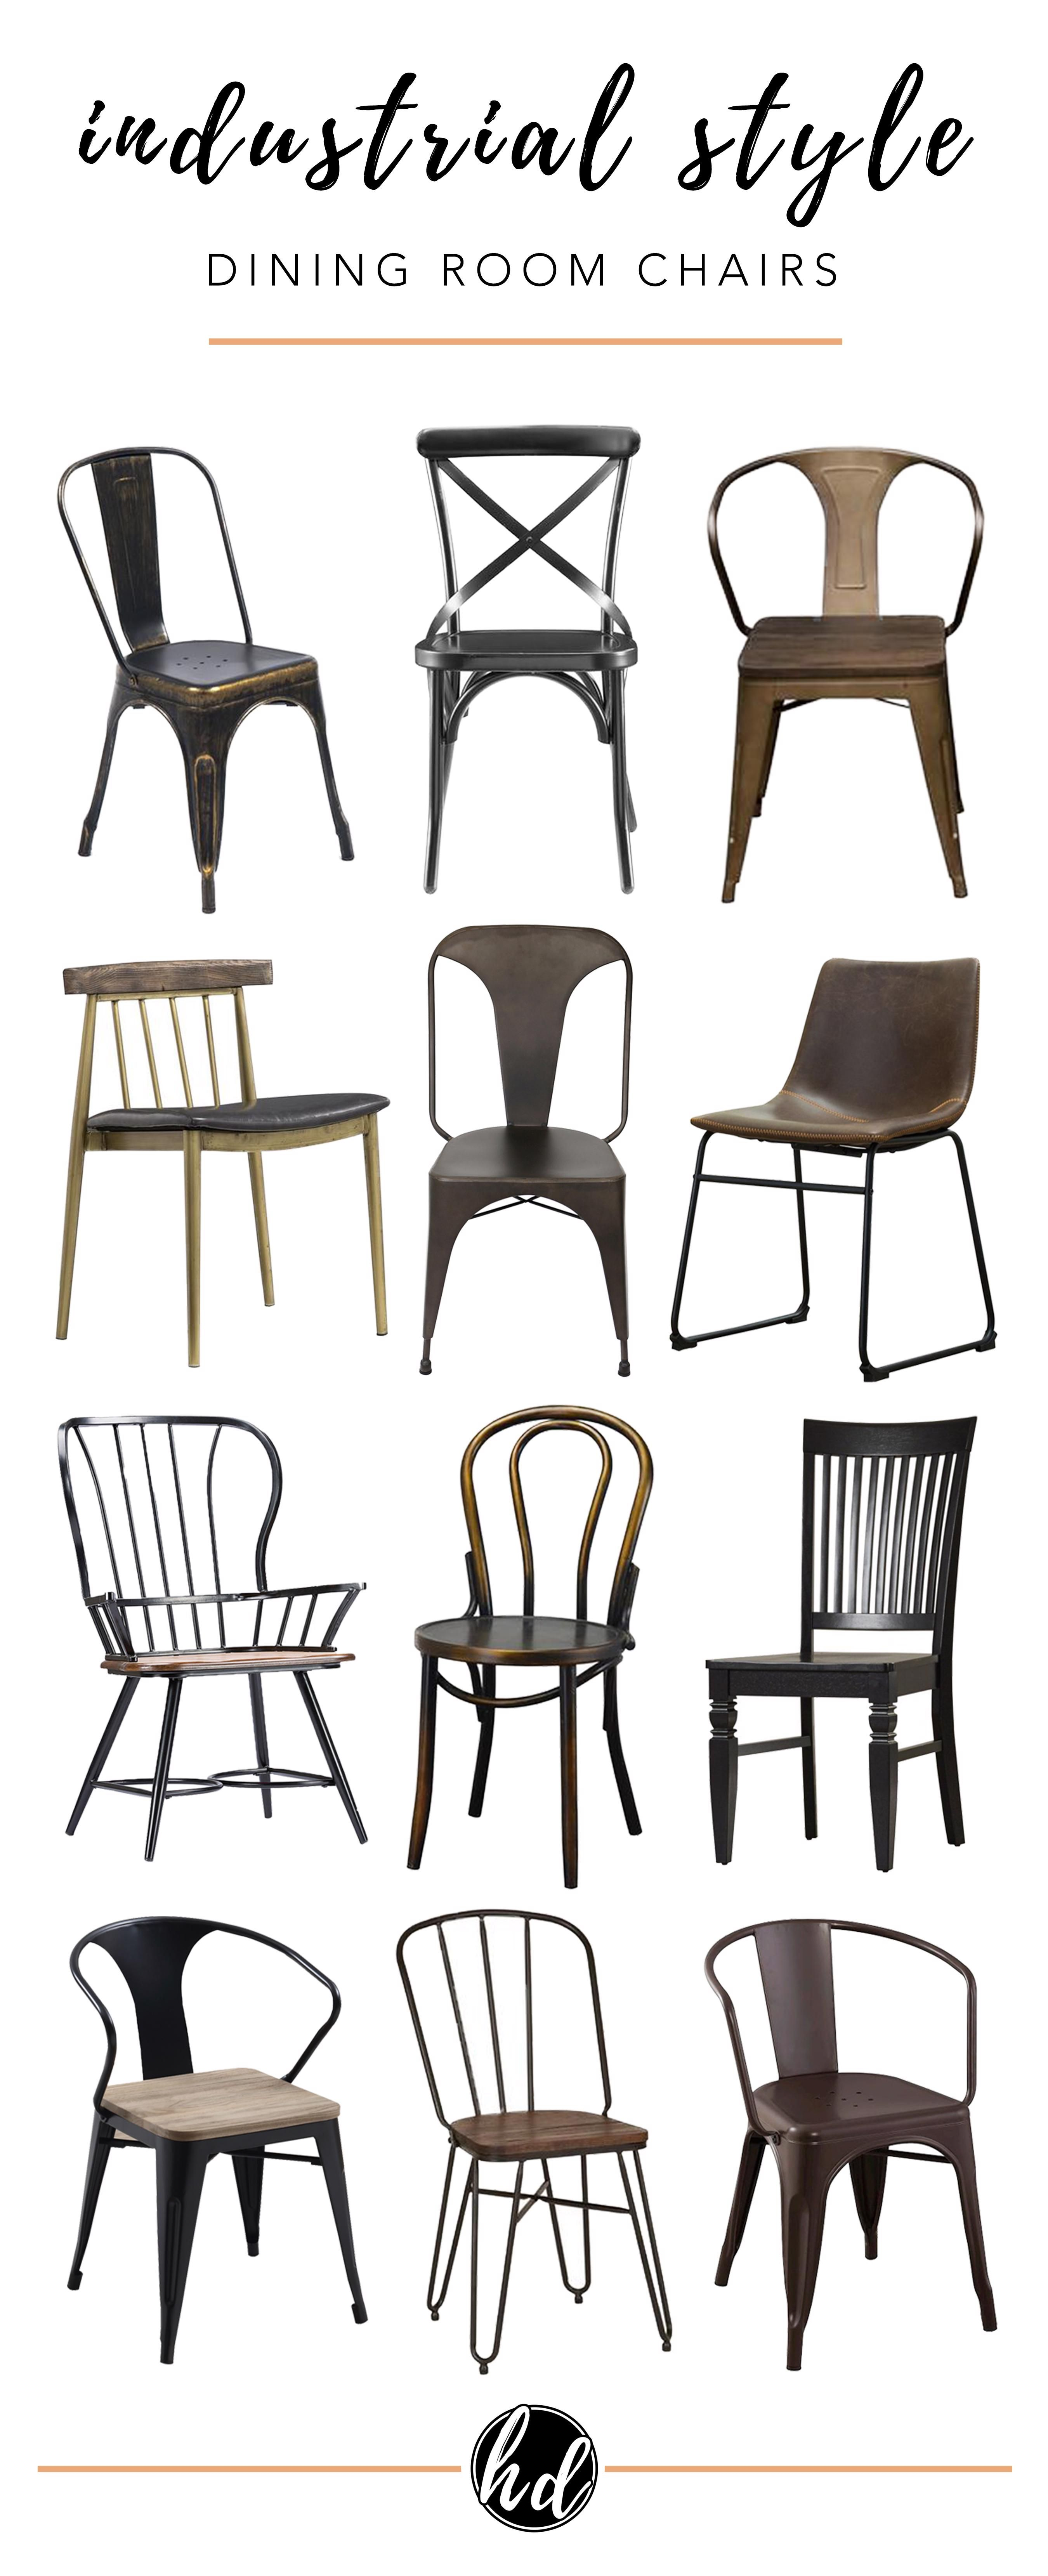 Affordable Modern Industrial Dining Chairs Hey Djangles Heydjangles Com Looking For Dining Room Industrial Industrial Dining Dining Room Chair Industrial